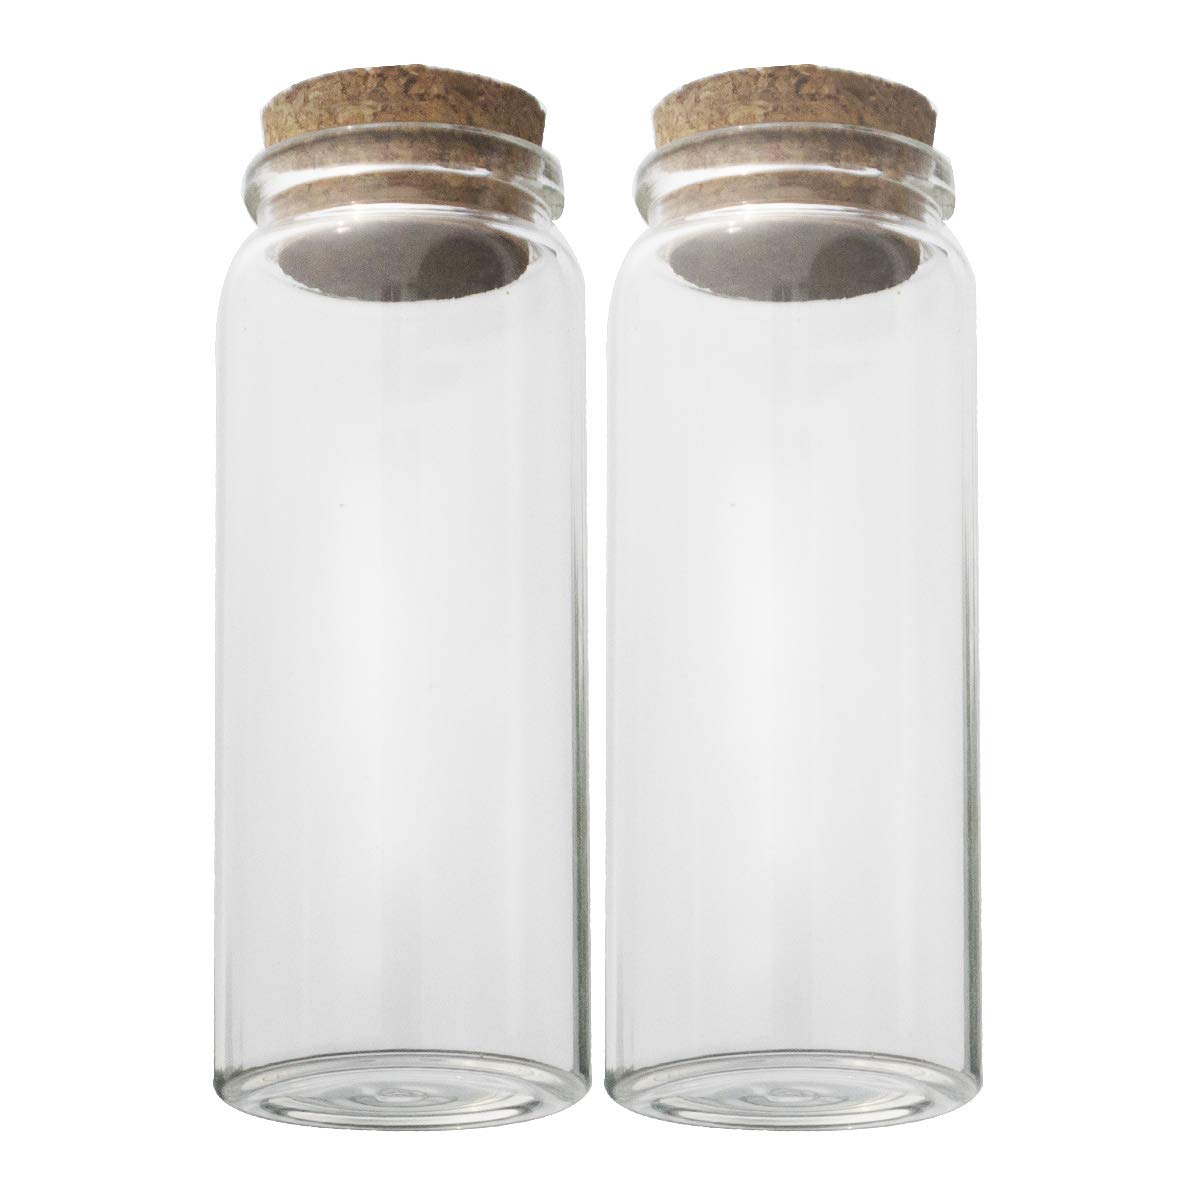 4pcs of 150 ml Empty Clear Glass Bottles Vials With Cork Stopper Storage Jars 47x120mm Bottle 5.3oz by ELYSAID